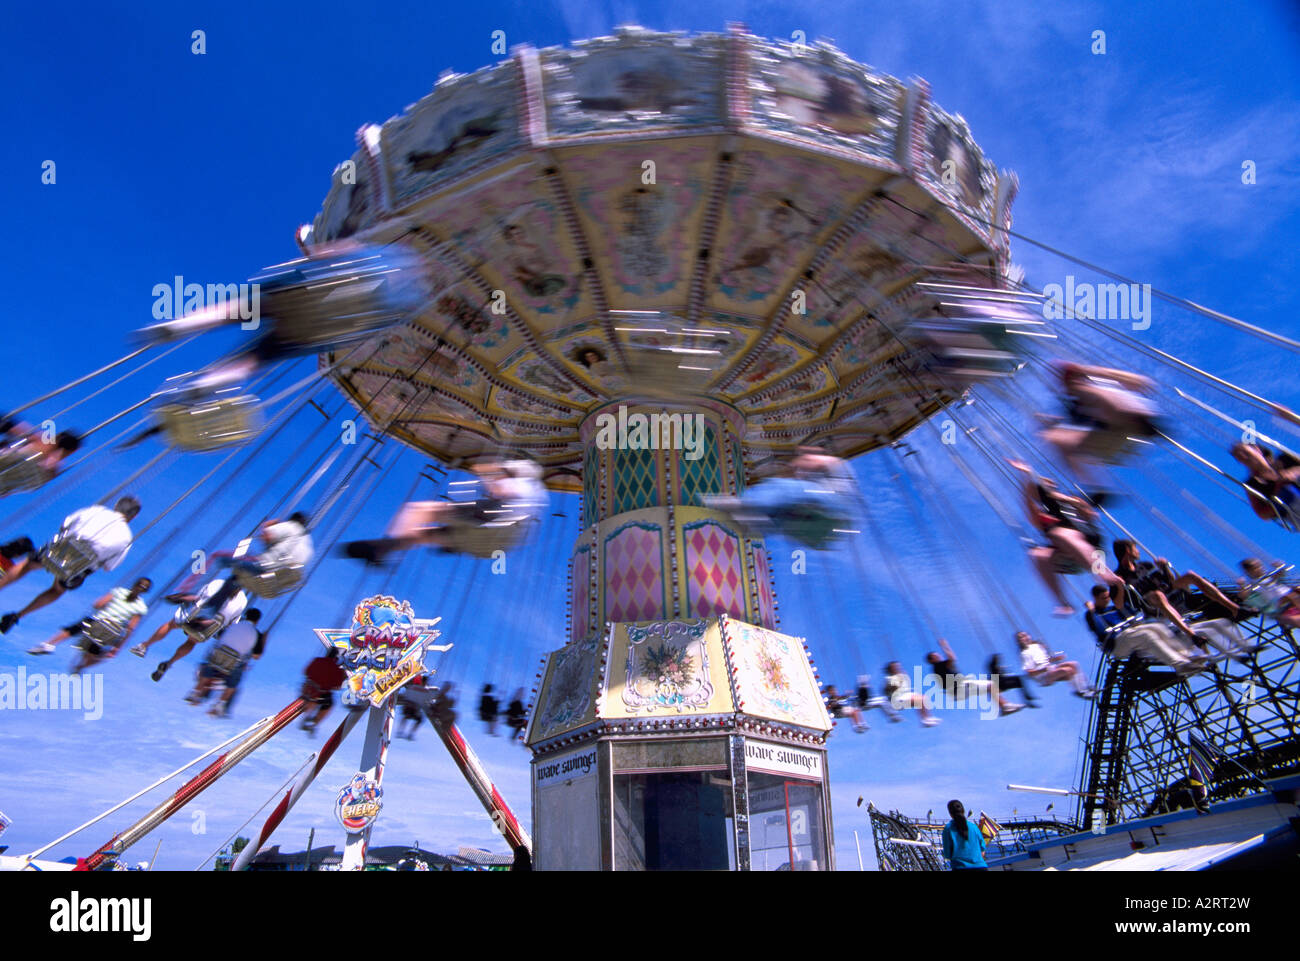 'Wave Swinger' Amusement Park Ride at Playland, Pacific National Exhibition (PNE), Vancouver, BC, British Columbia, Stock Photo